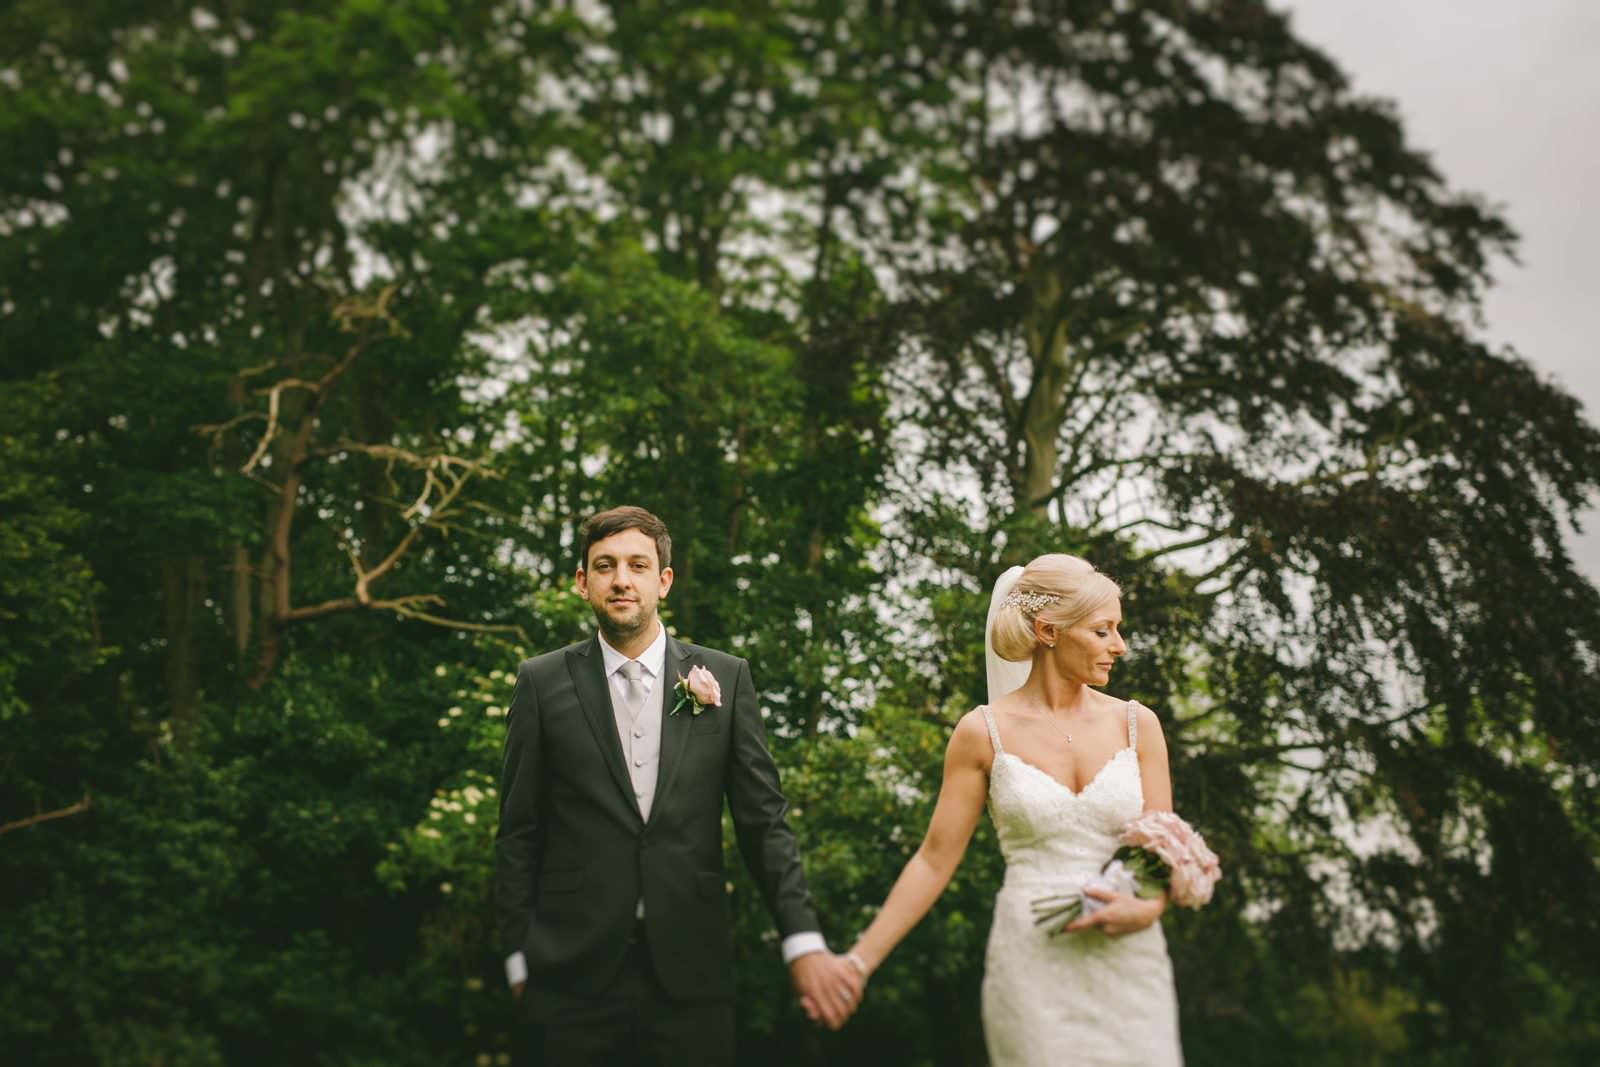 wedding photographer in Shropshire with a beautiful bride and groom at Shooter's Hill Hall